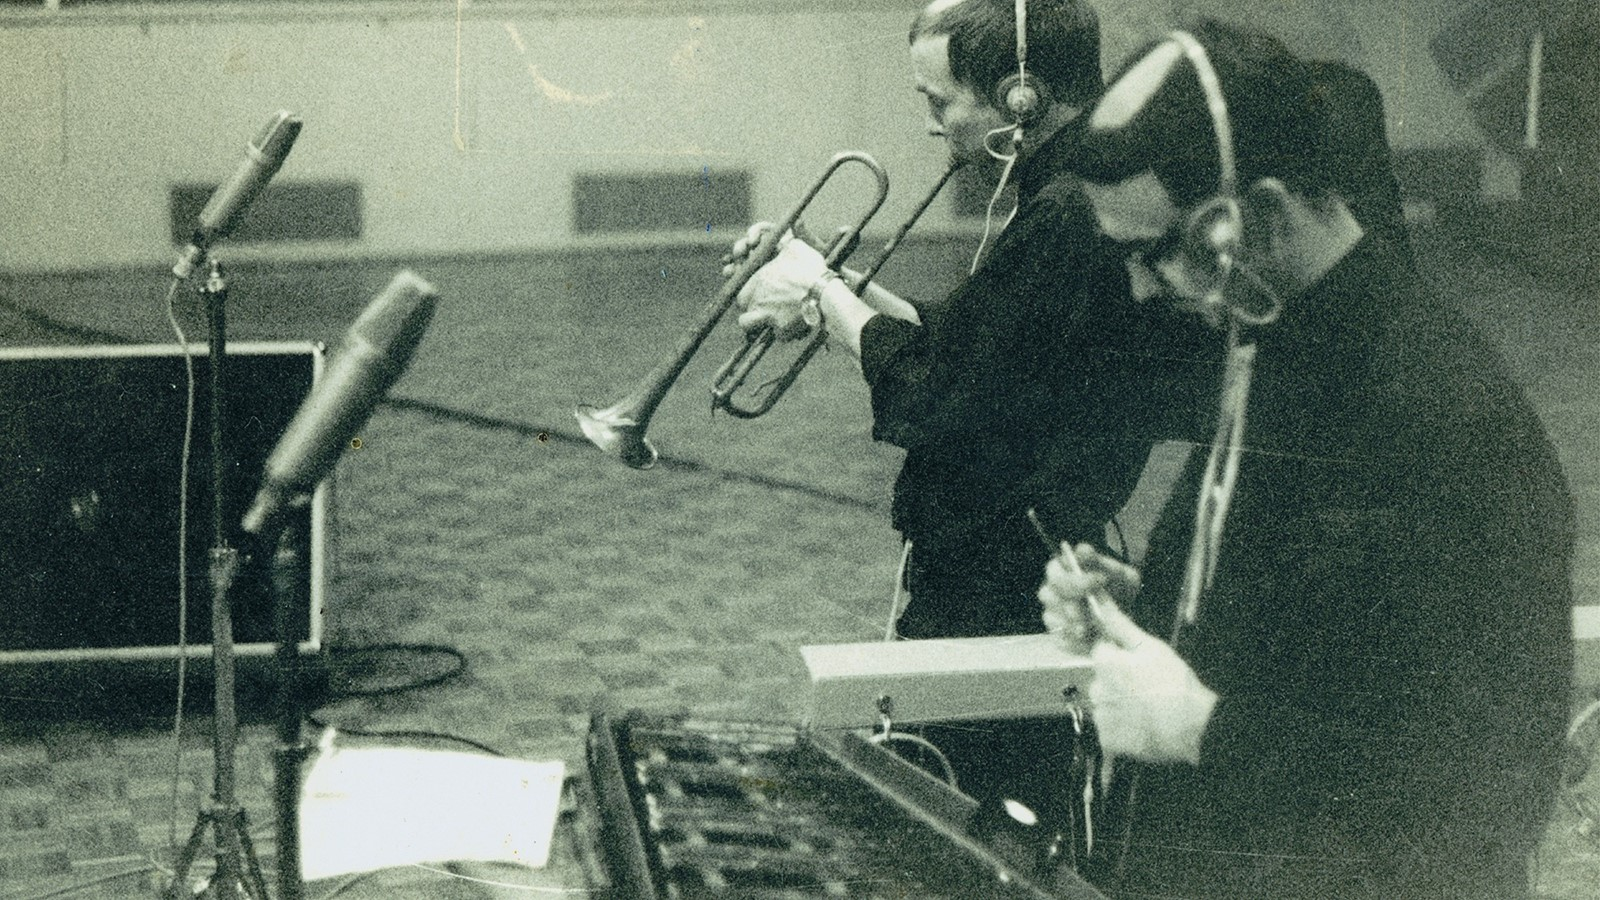 The Monks recording Black Monk Time, 1966